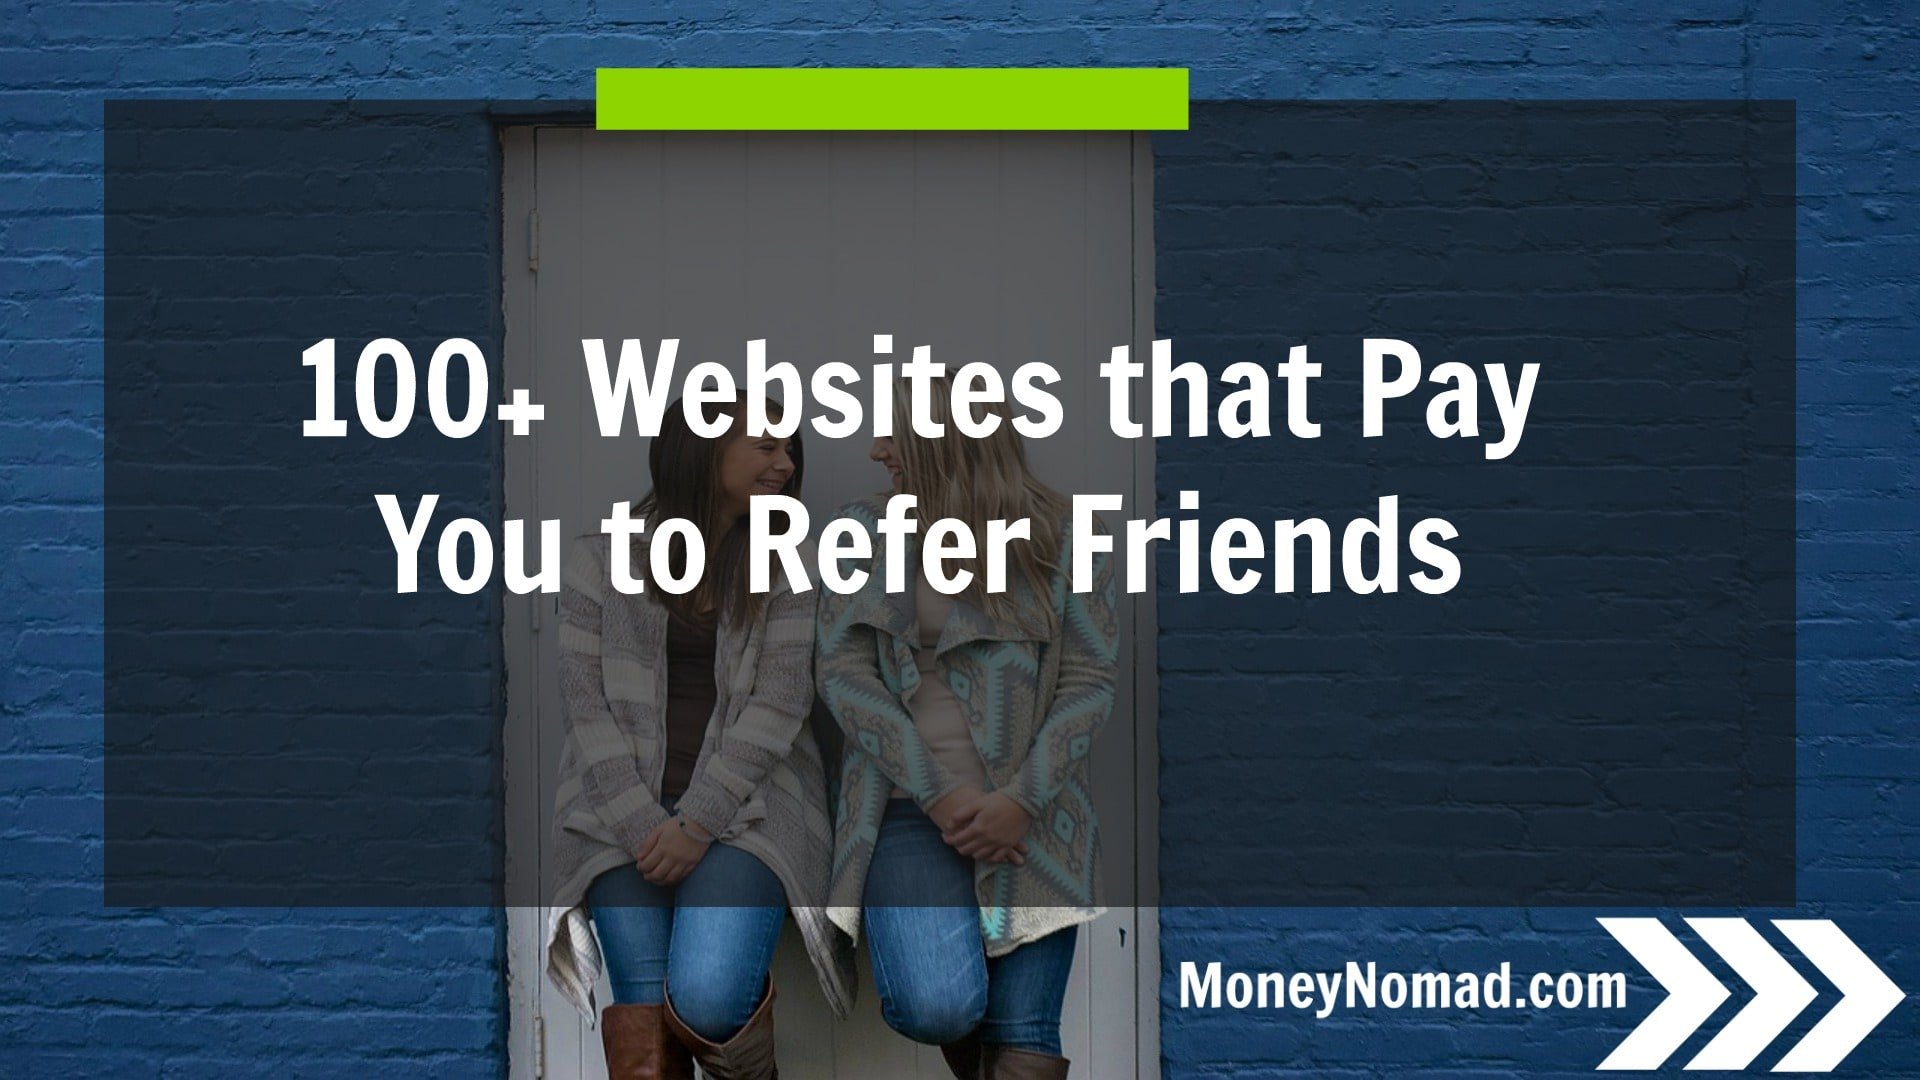 Over 100 Websites that Pay You to Refer Friends - Money Nomad